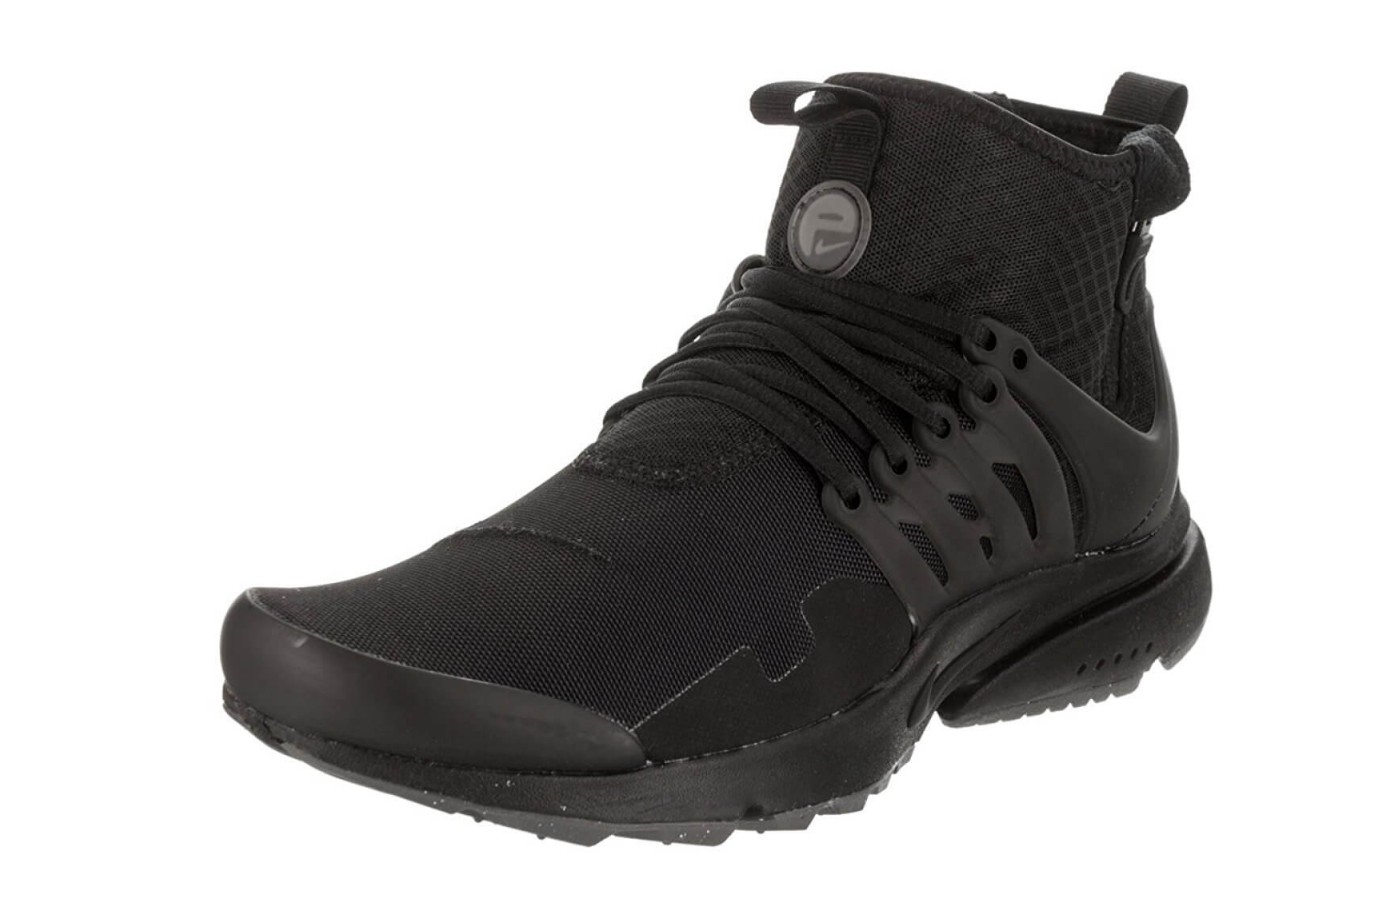 21587bca418a Nike Air Presto Mid Utility - To Buy or Not in Apr 2019